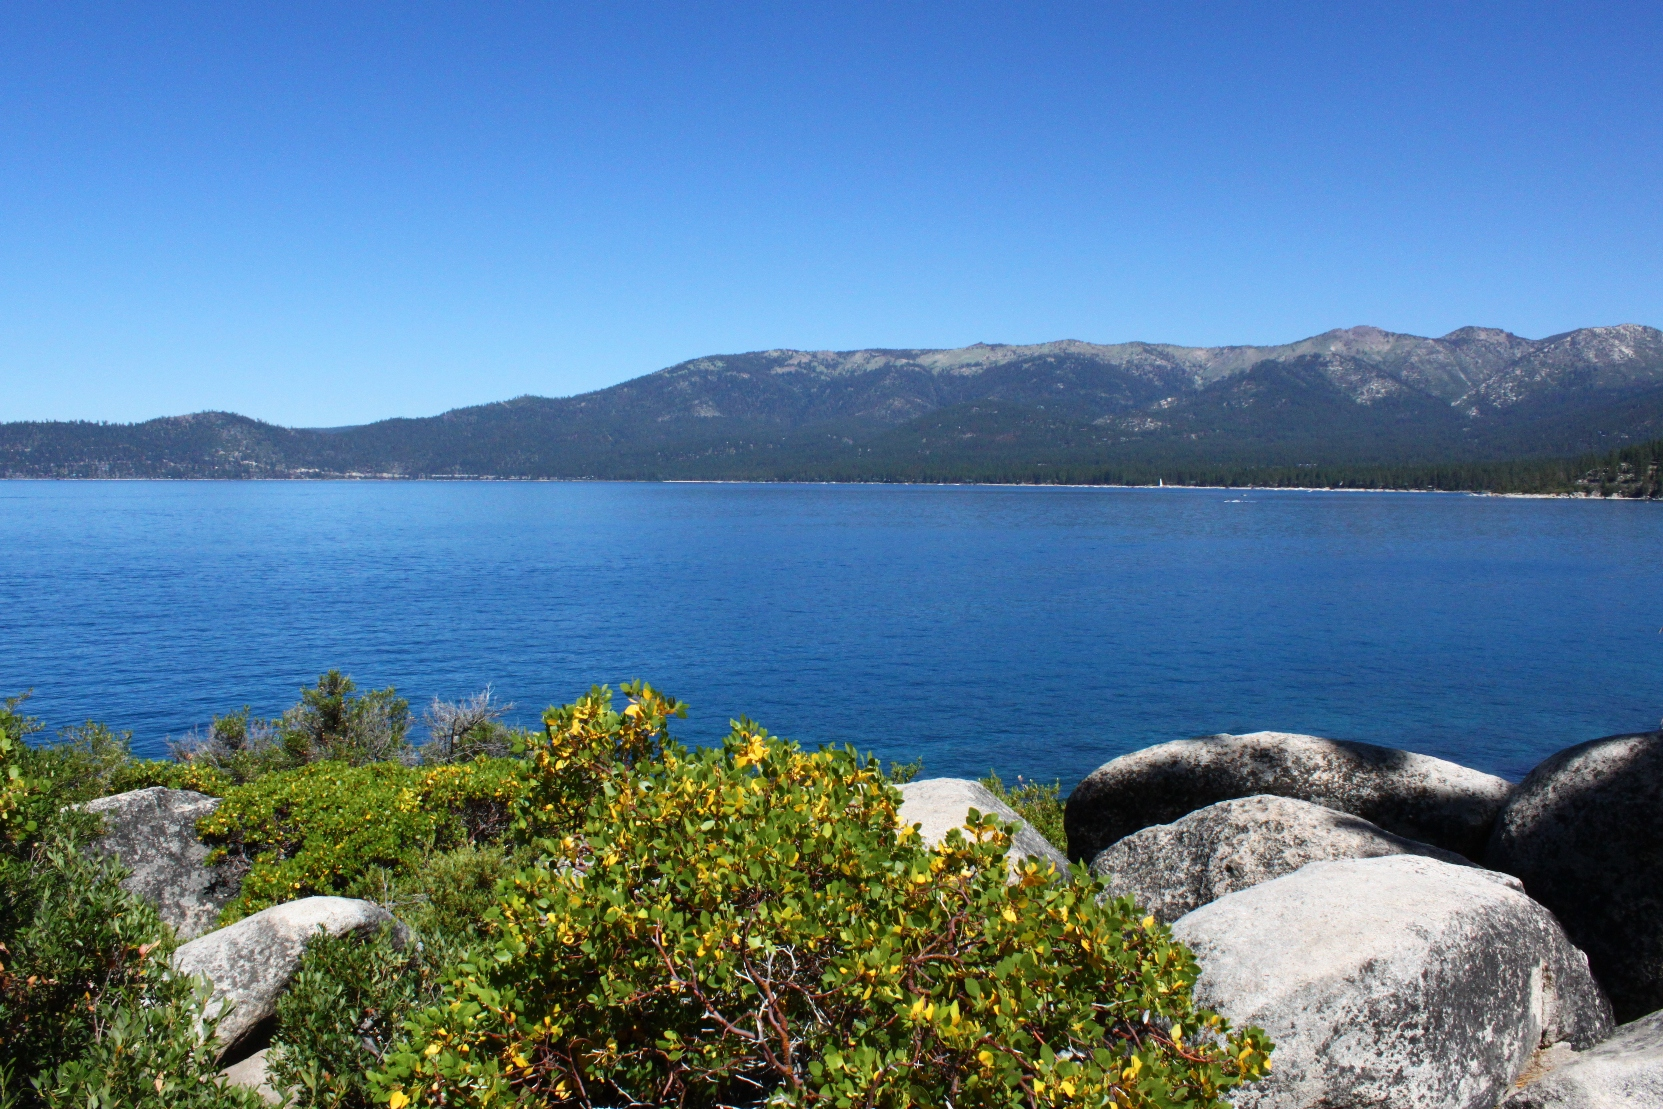 All Types tahoe pictures : Lake Tahoe, Jewel of the Sierra | Maven's Photoblog